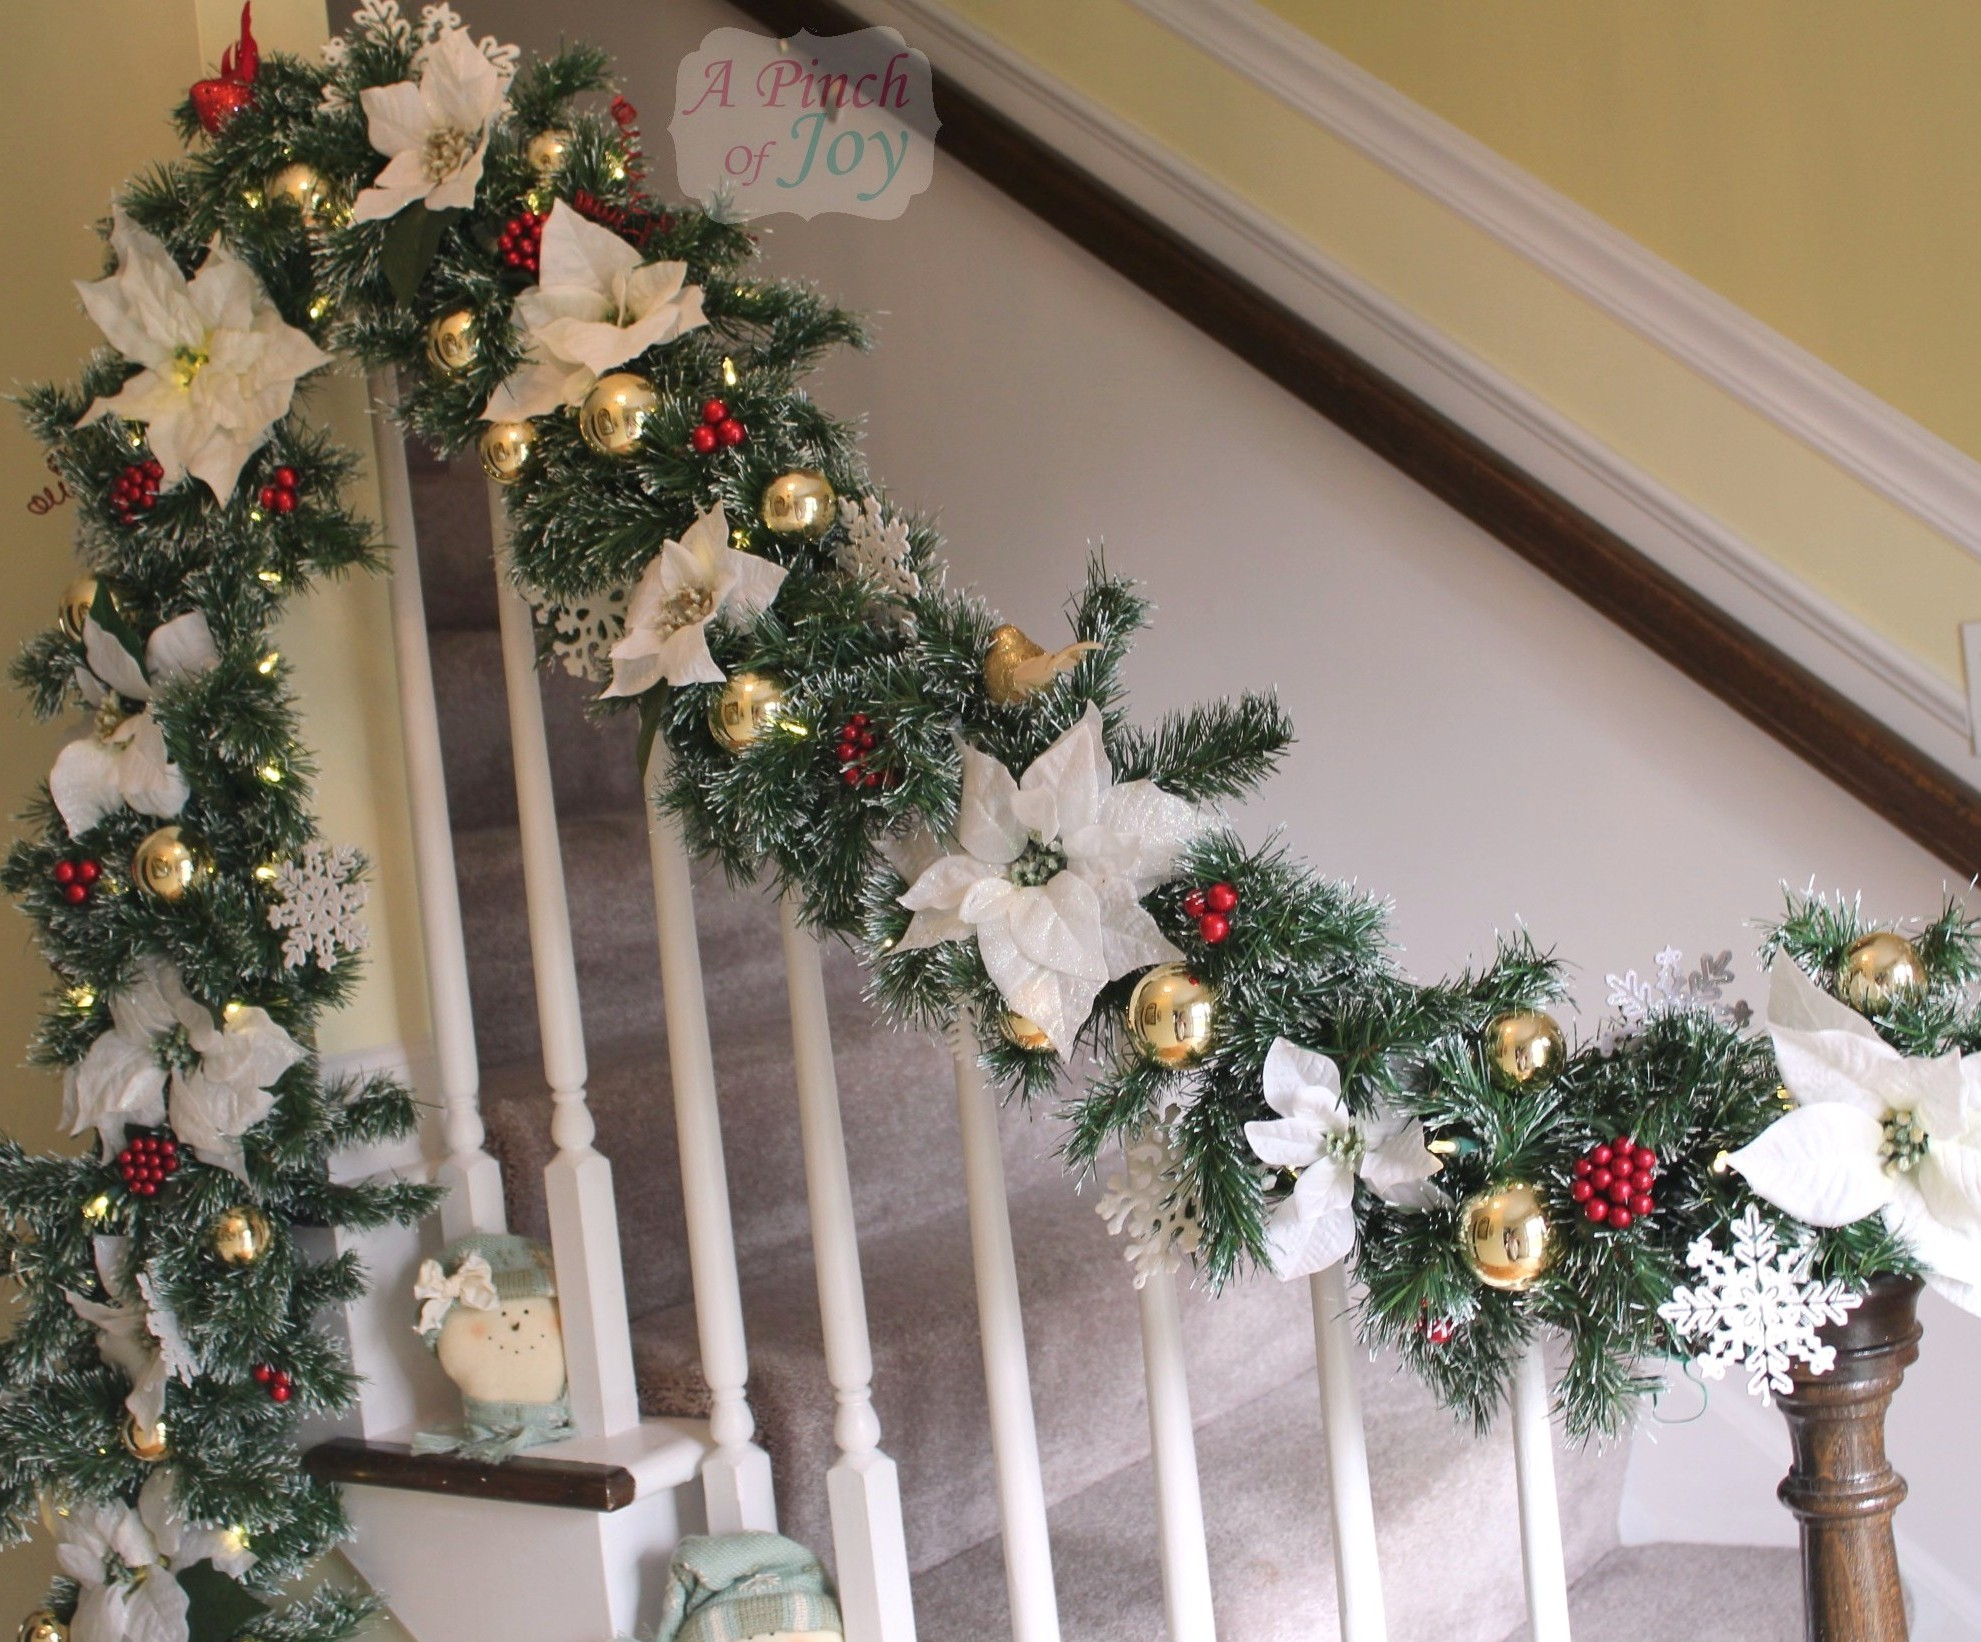 we changed the colors in the hallway so i made a new garland to go with the new scheme i used the classic white gold and red colors and the white - Banister Christmas Garland Decor